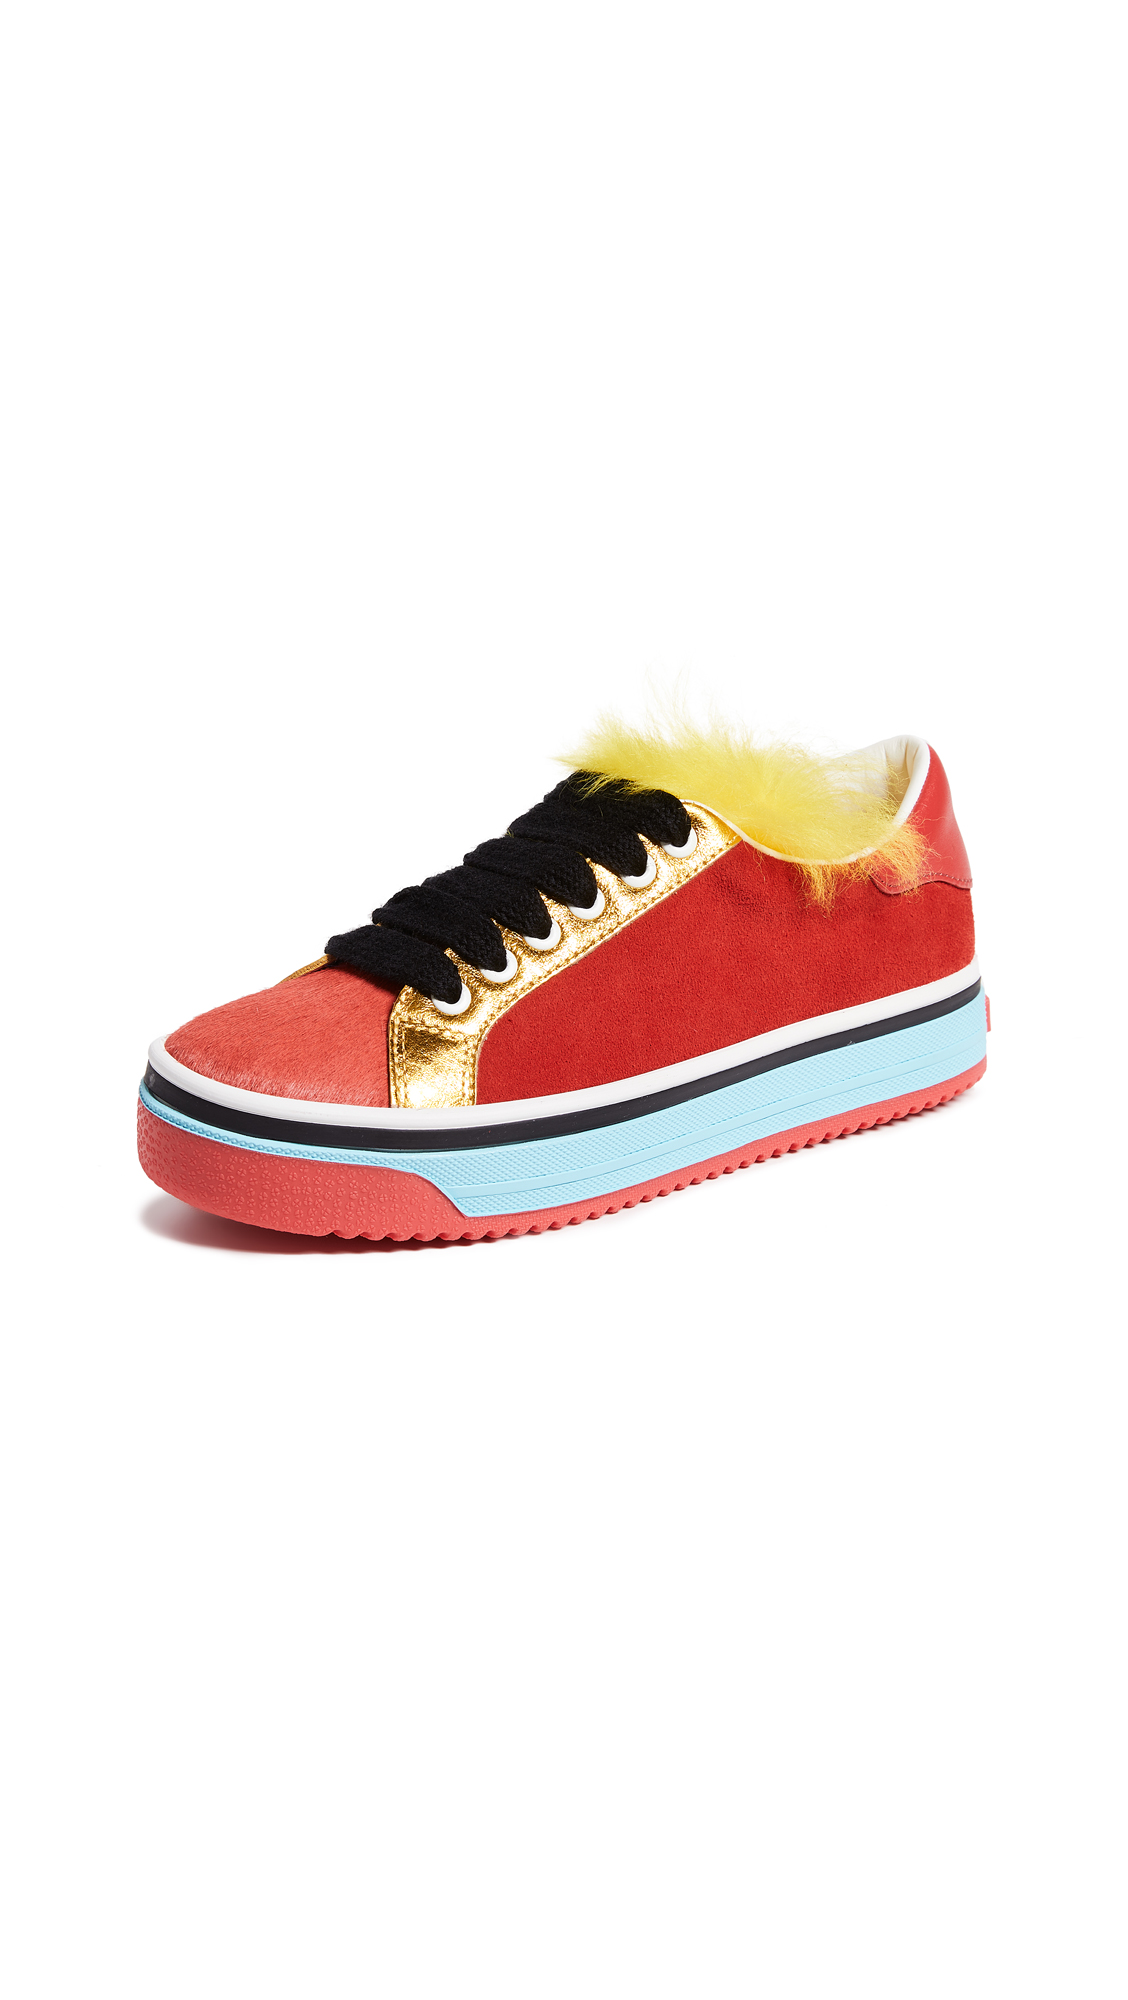 Marc Jacobs Love Empire Fur Sneakers - Red Multi